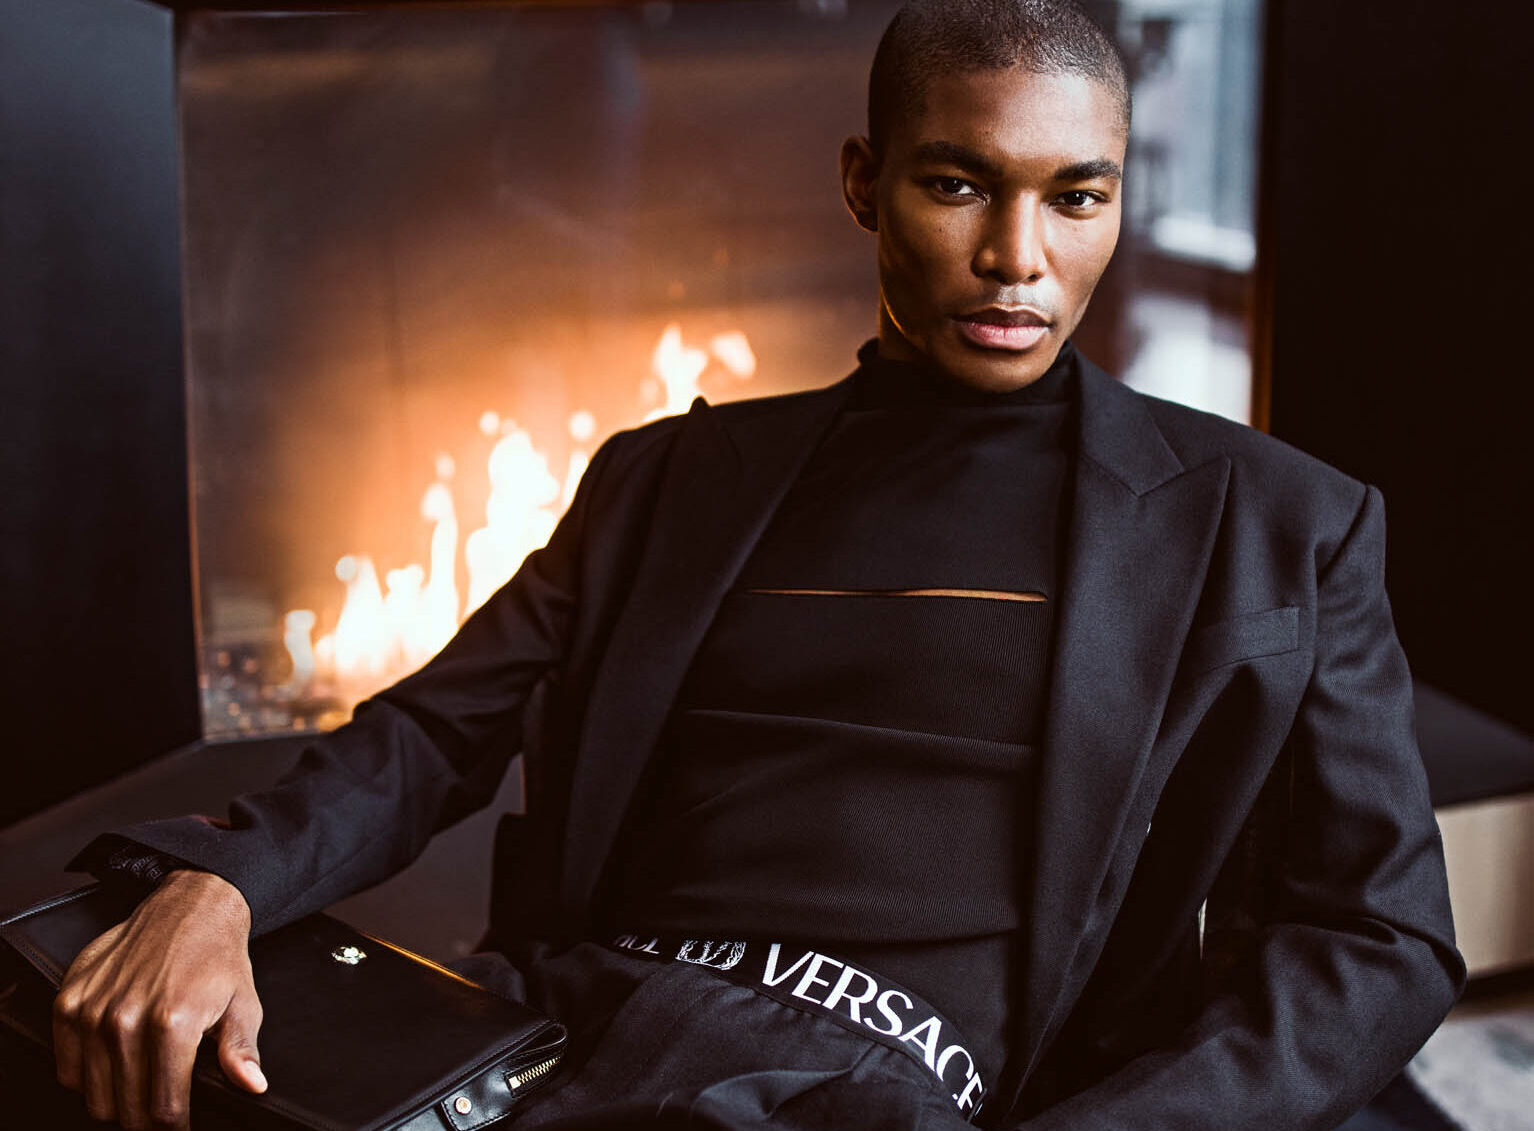 Matallana MOM 2020Stylist KBreen Look06 300 e1608138433264 - style, slider - In Your Eyes - Winter, Versace, In Your Eyes, Holiday Issue, Equinox Hotels - In Your Eyes